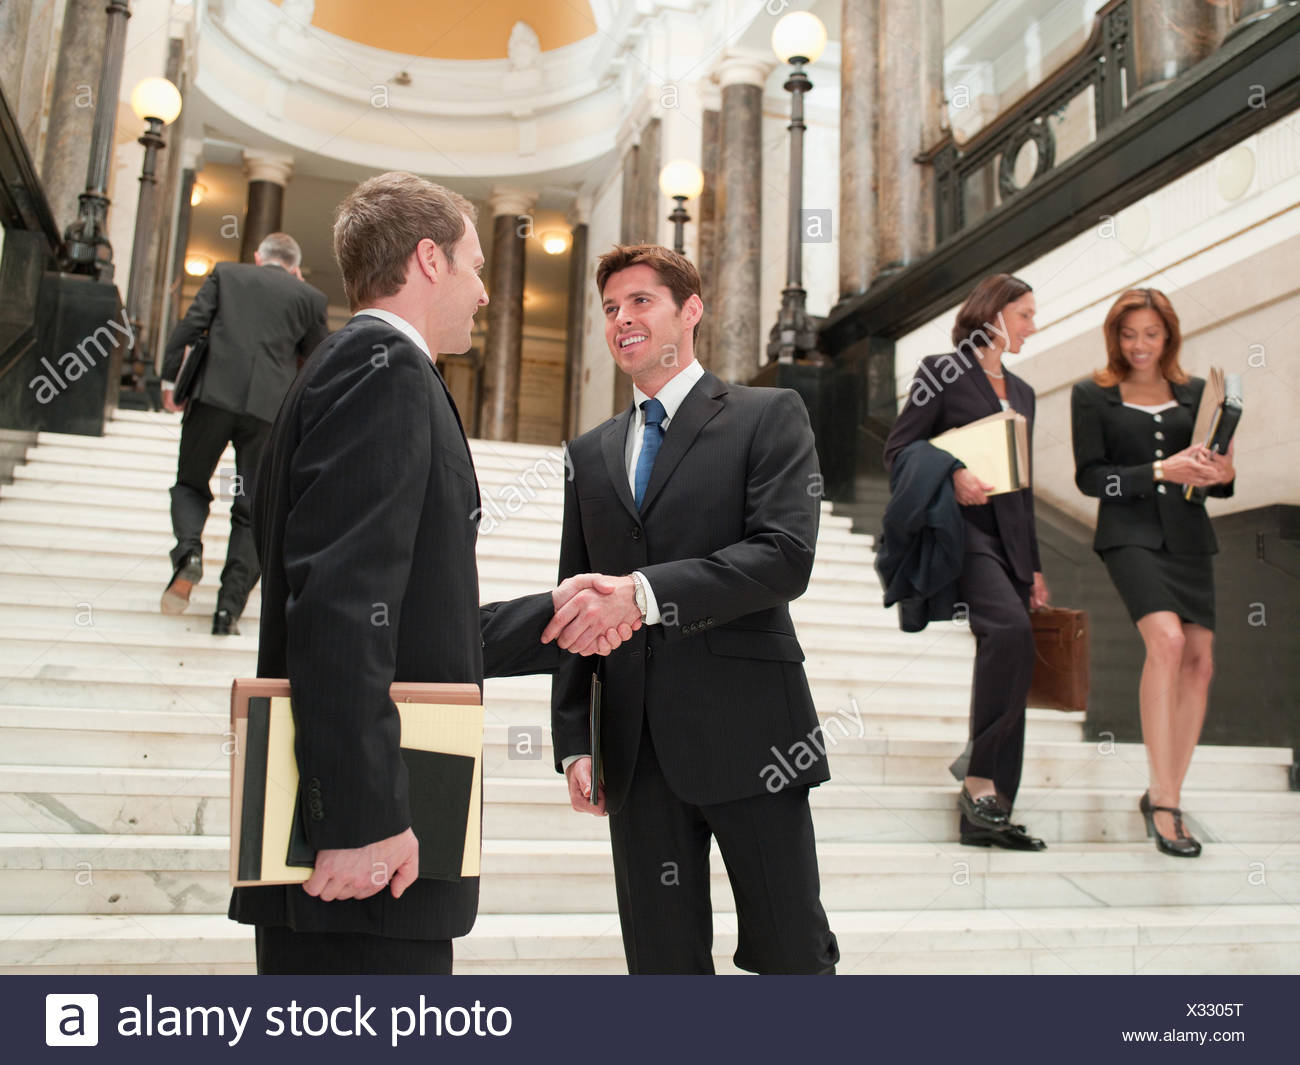 Smiling lawyers shaking hands on stairs - Stock Image